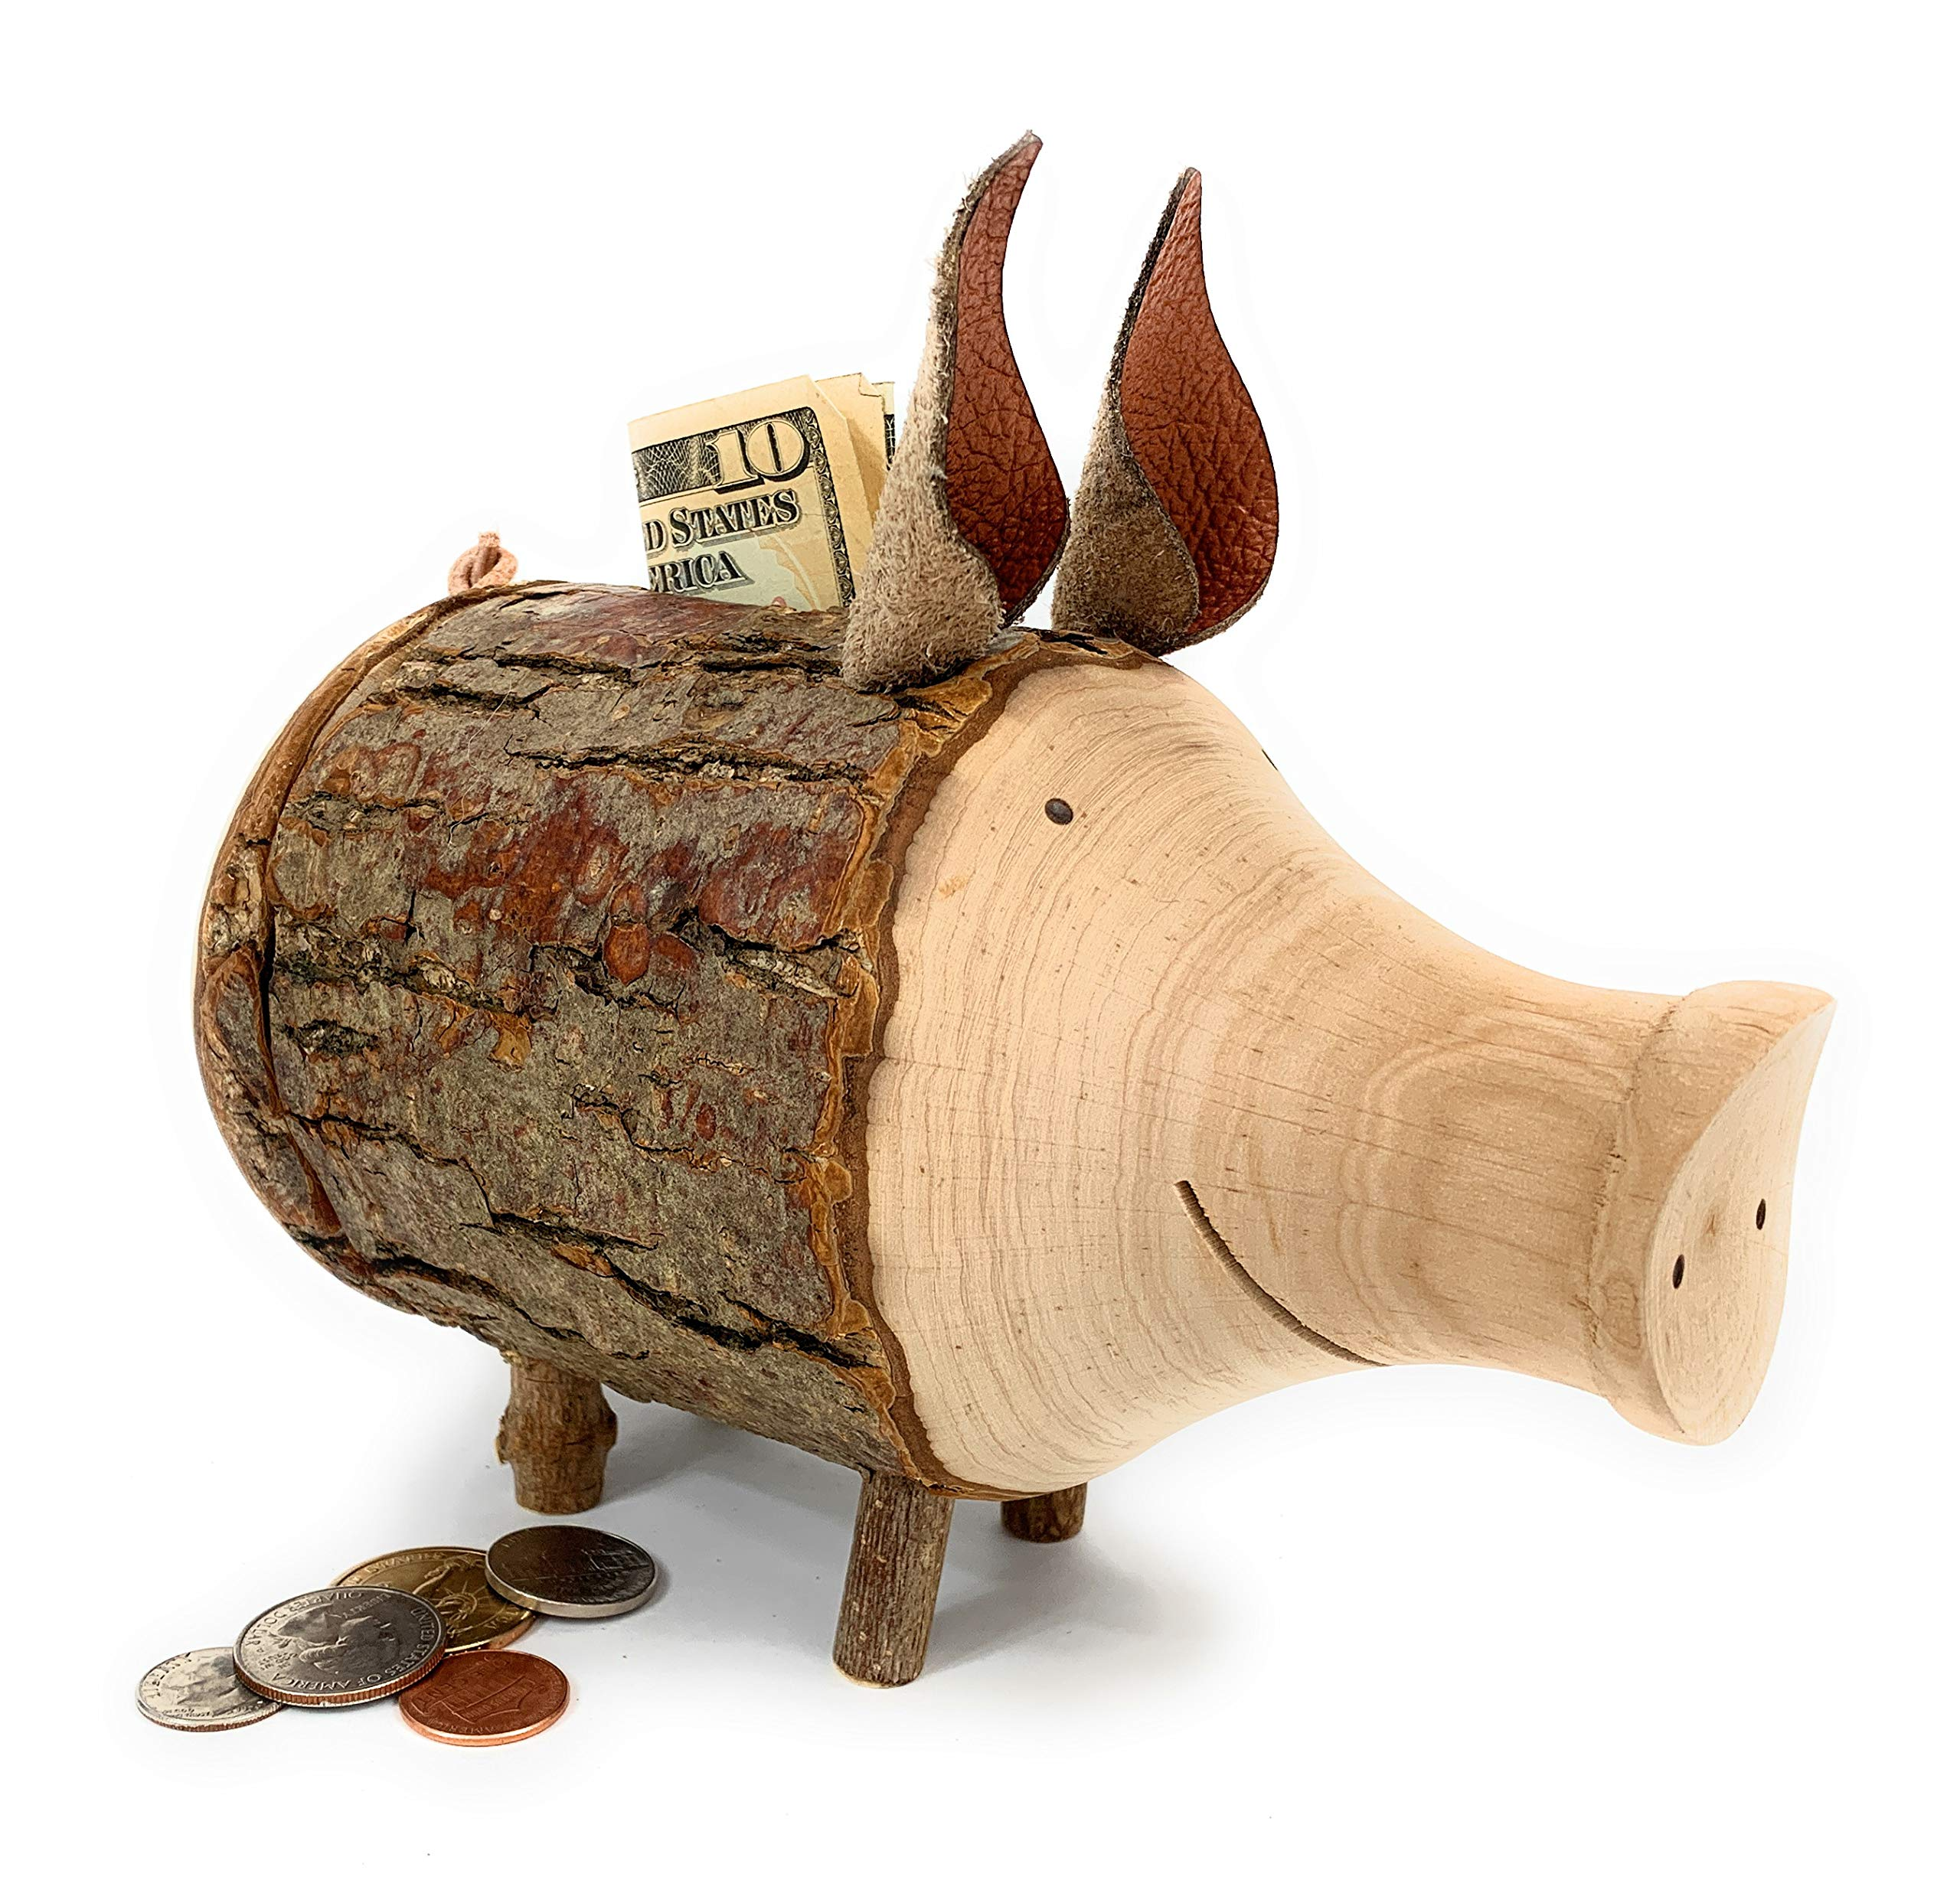 Forest Decor Cute Kid's Piggy Bank for Boys and Girls, Handmade Wood Craftsmanship, Cute Unfinished Bark, Stores Cash and Coins, Made in Germany by Forest Decor